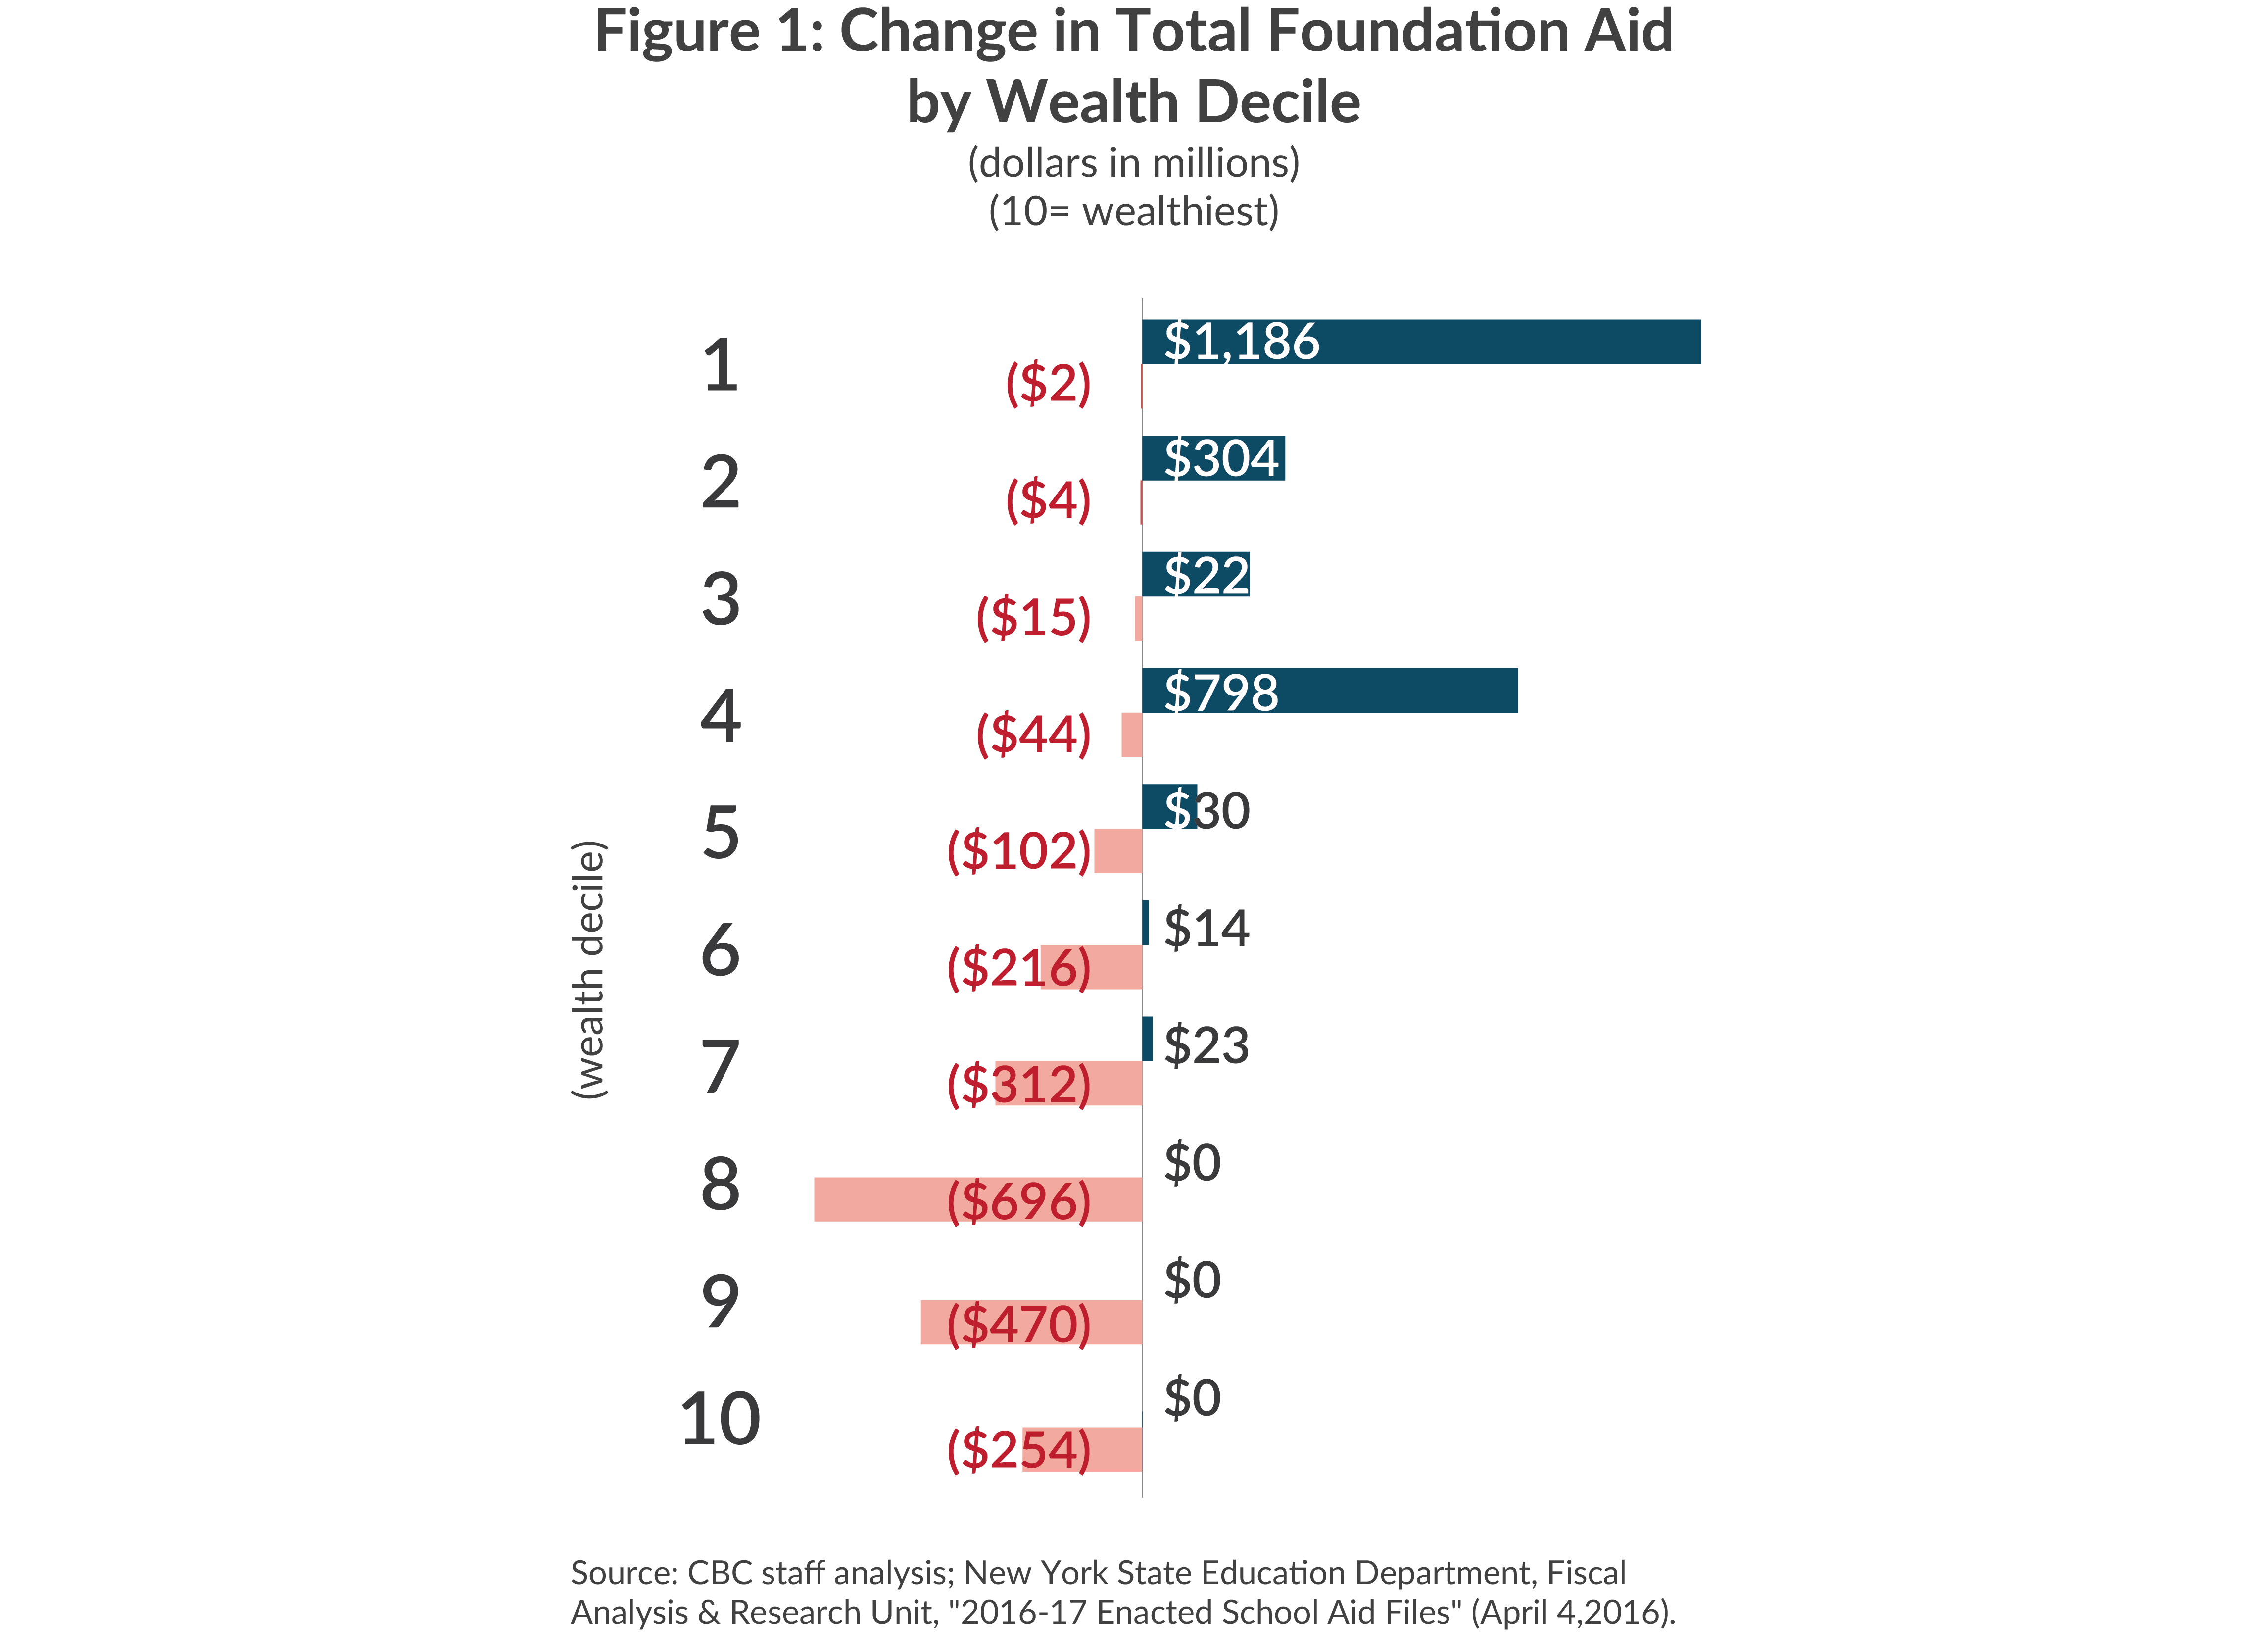 Bar chart of change in foundation aid by decile